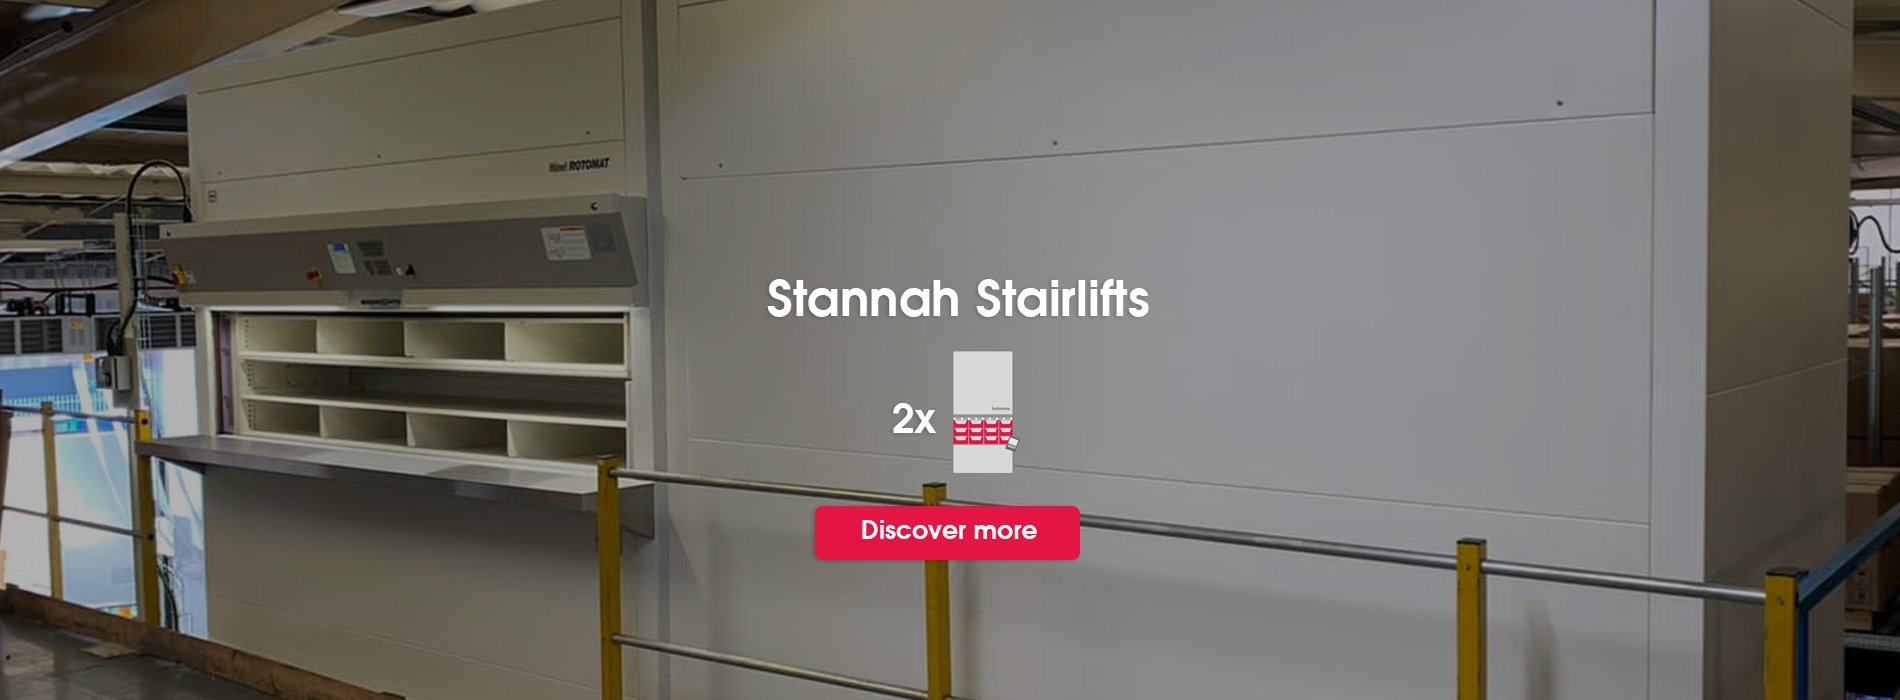 Stannah Case Study